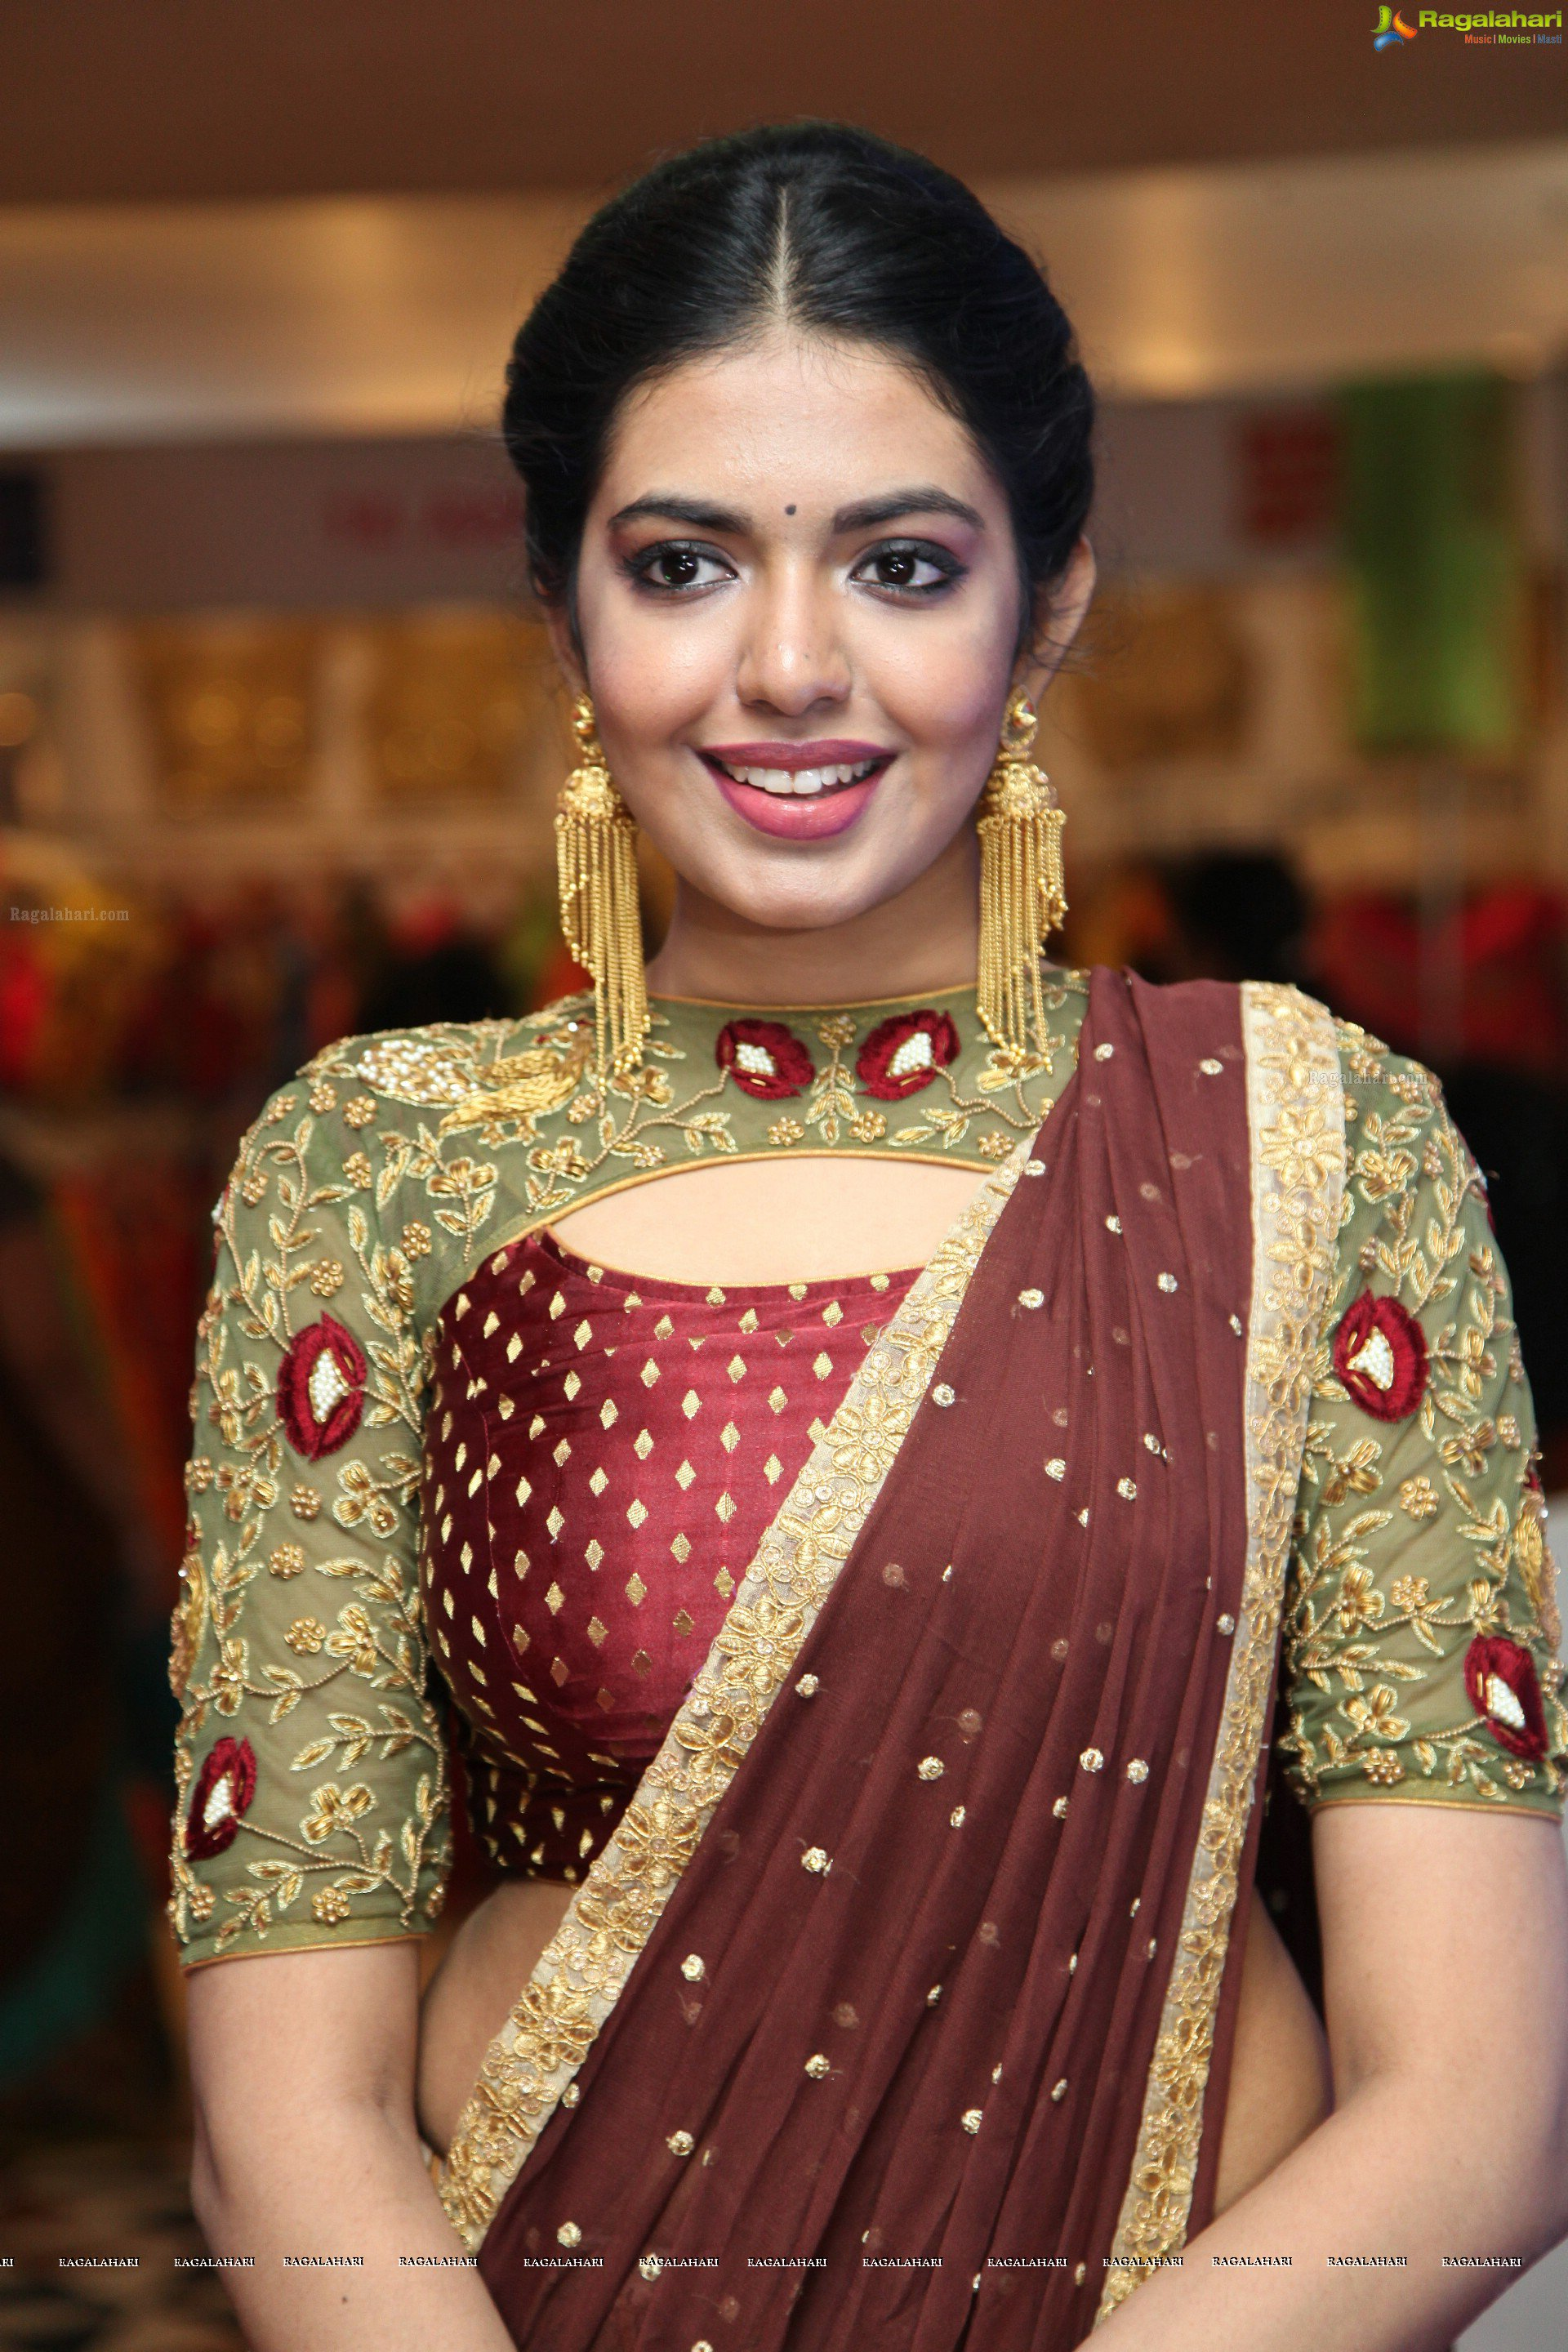 shivani-rajasekhar-trendz-hd-photos5